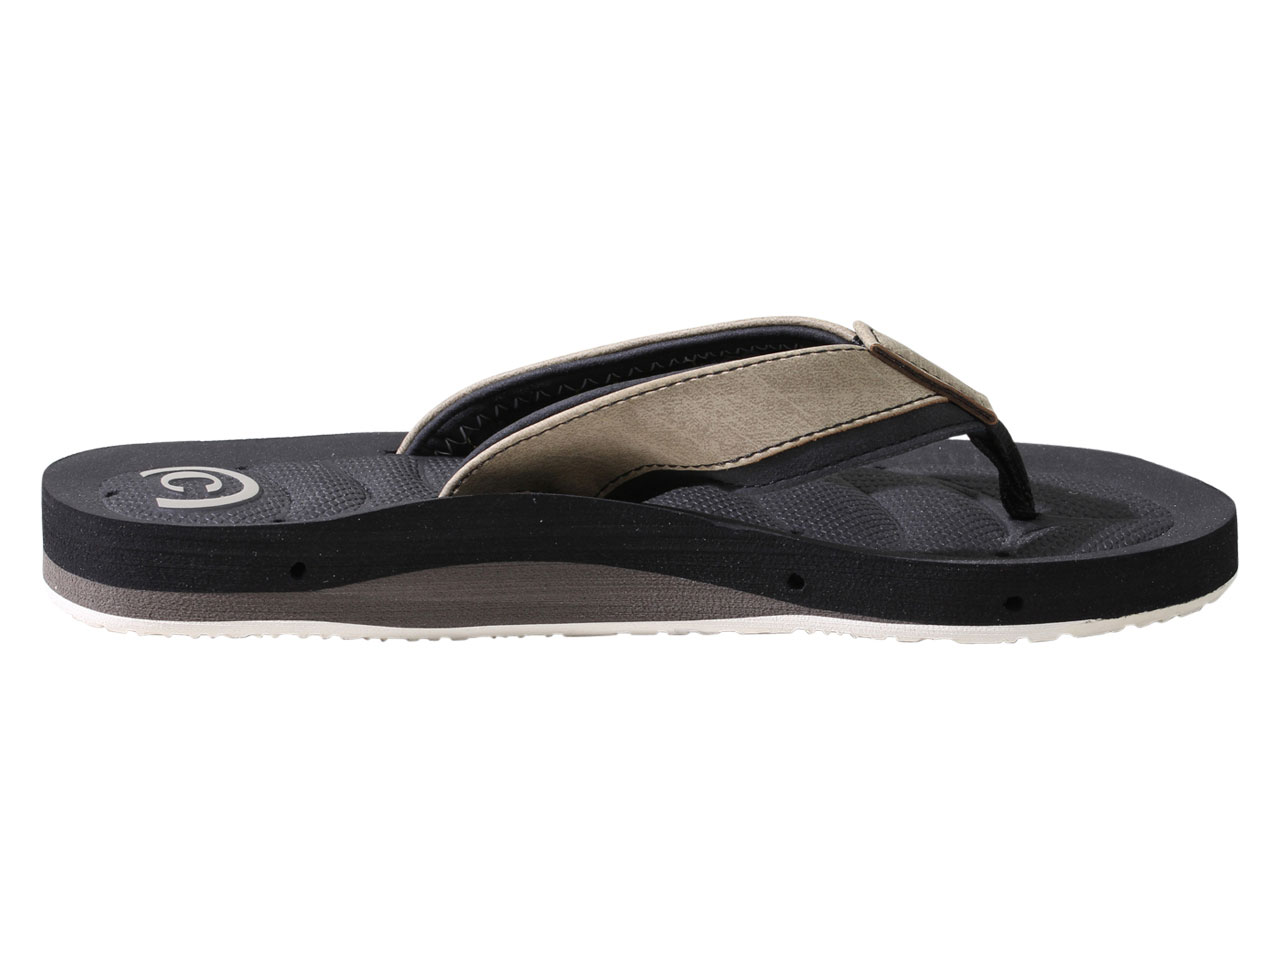 49eb8a4f454c Cobian Men s Draino-II Flip Flops Sandals Shoes